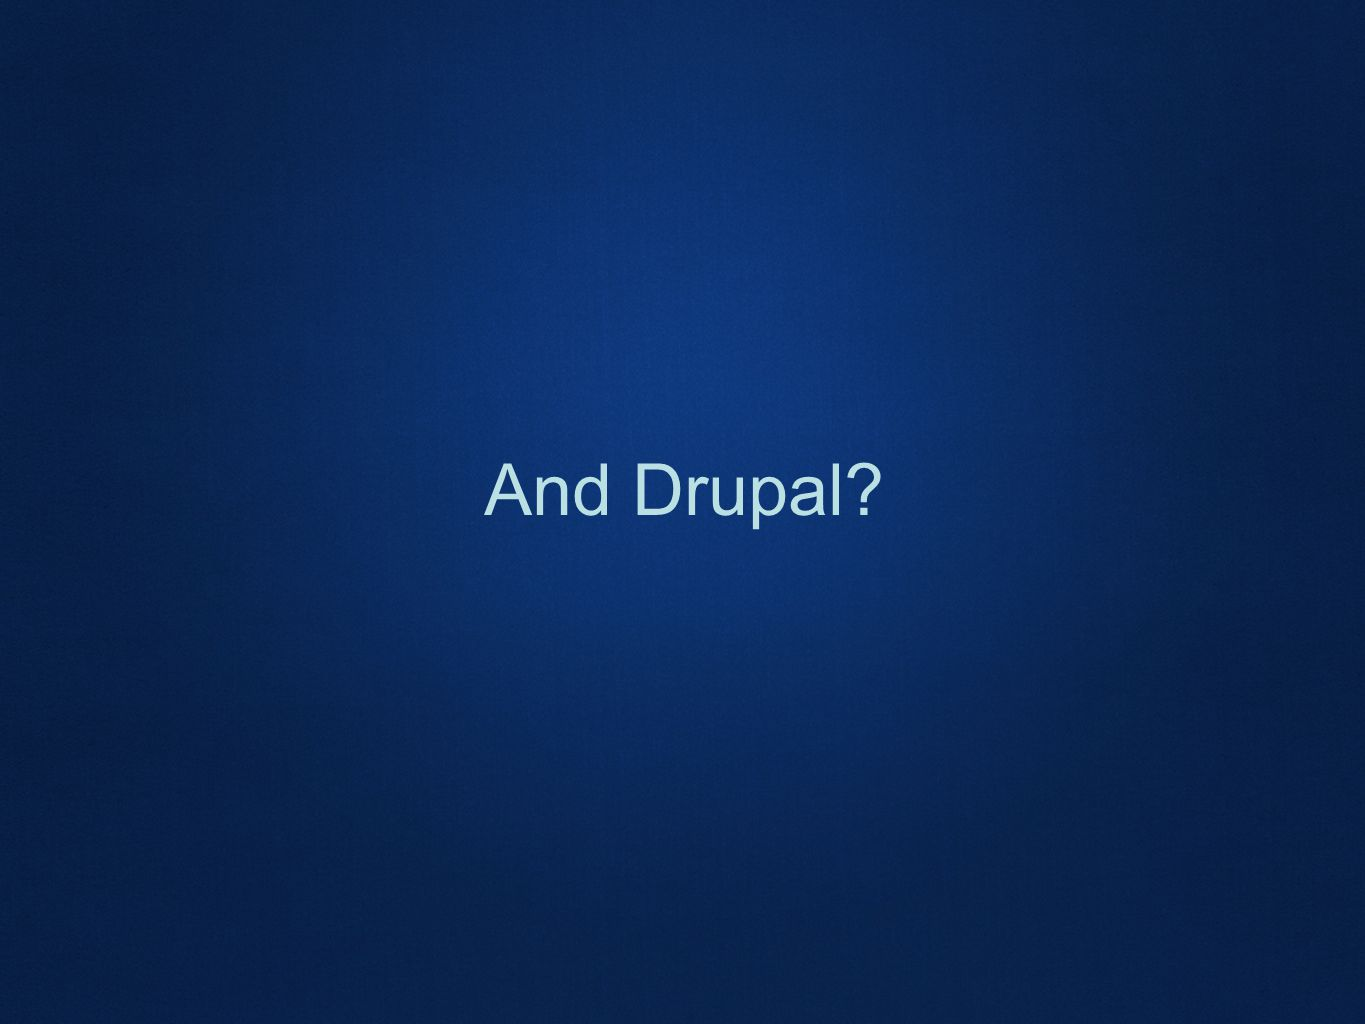 And Drupal